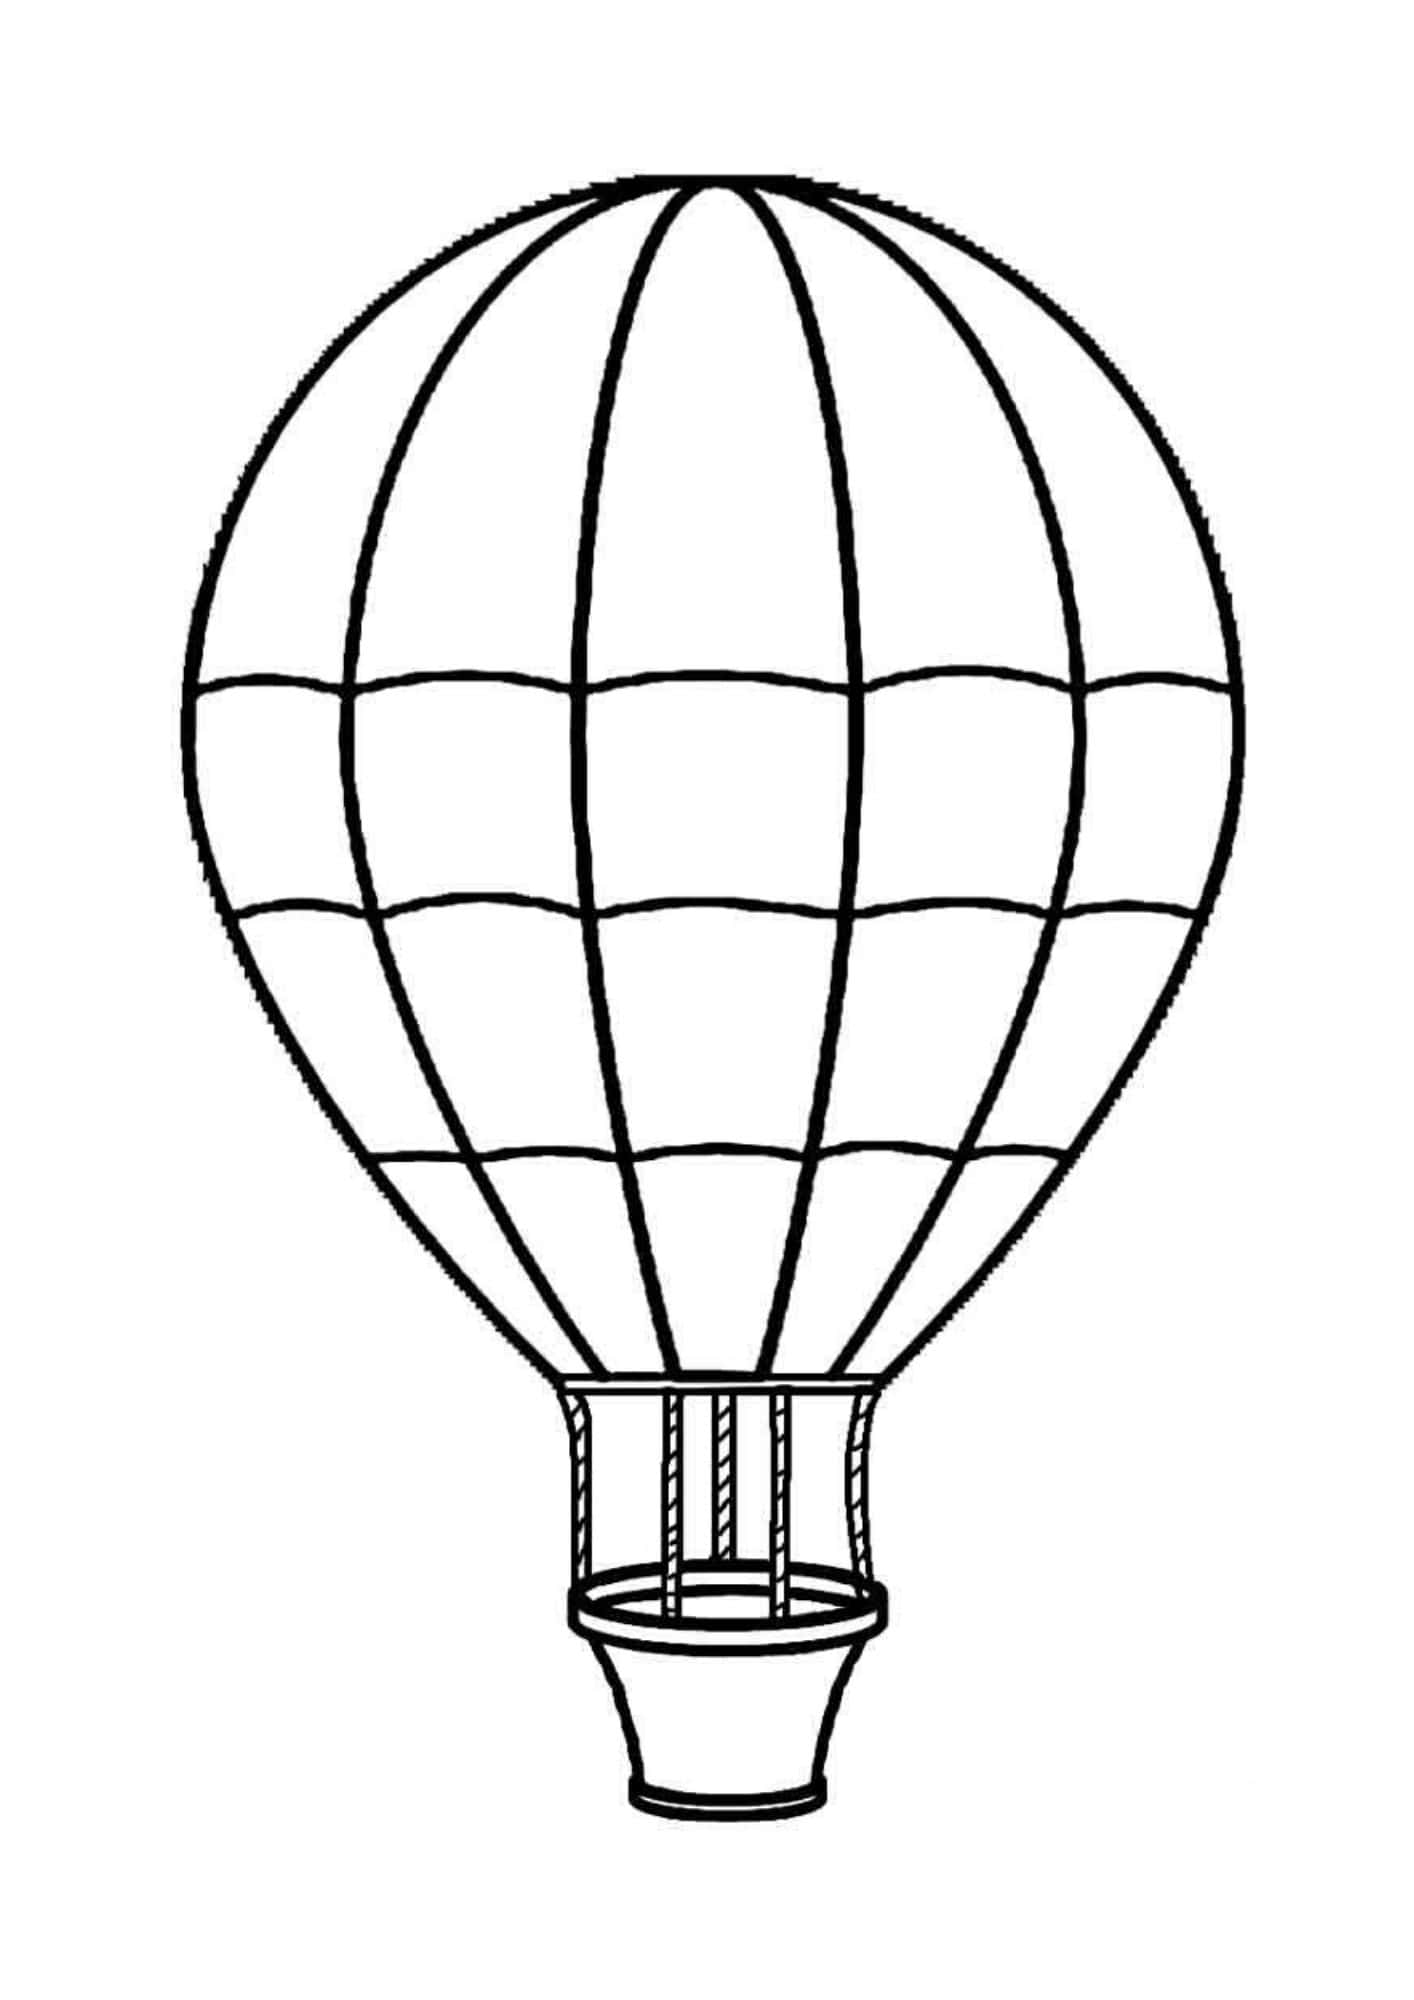 sketch of hot air balloon hand drawn sketch of hot air balloon premium vector air balloon sketch hot of